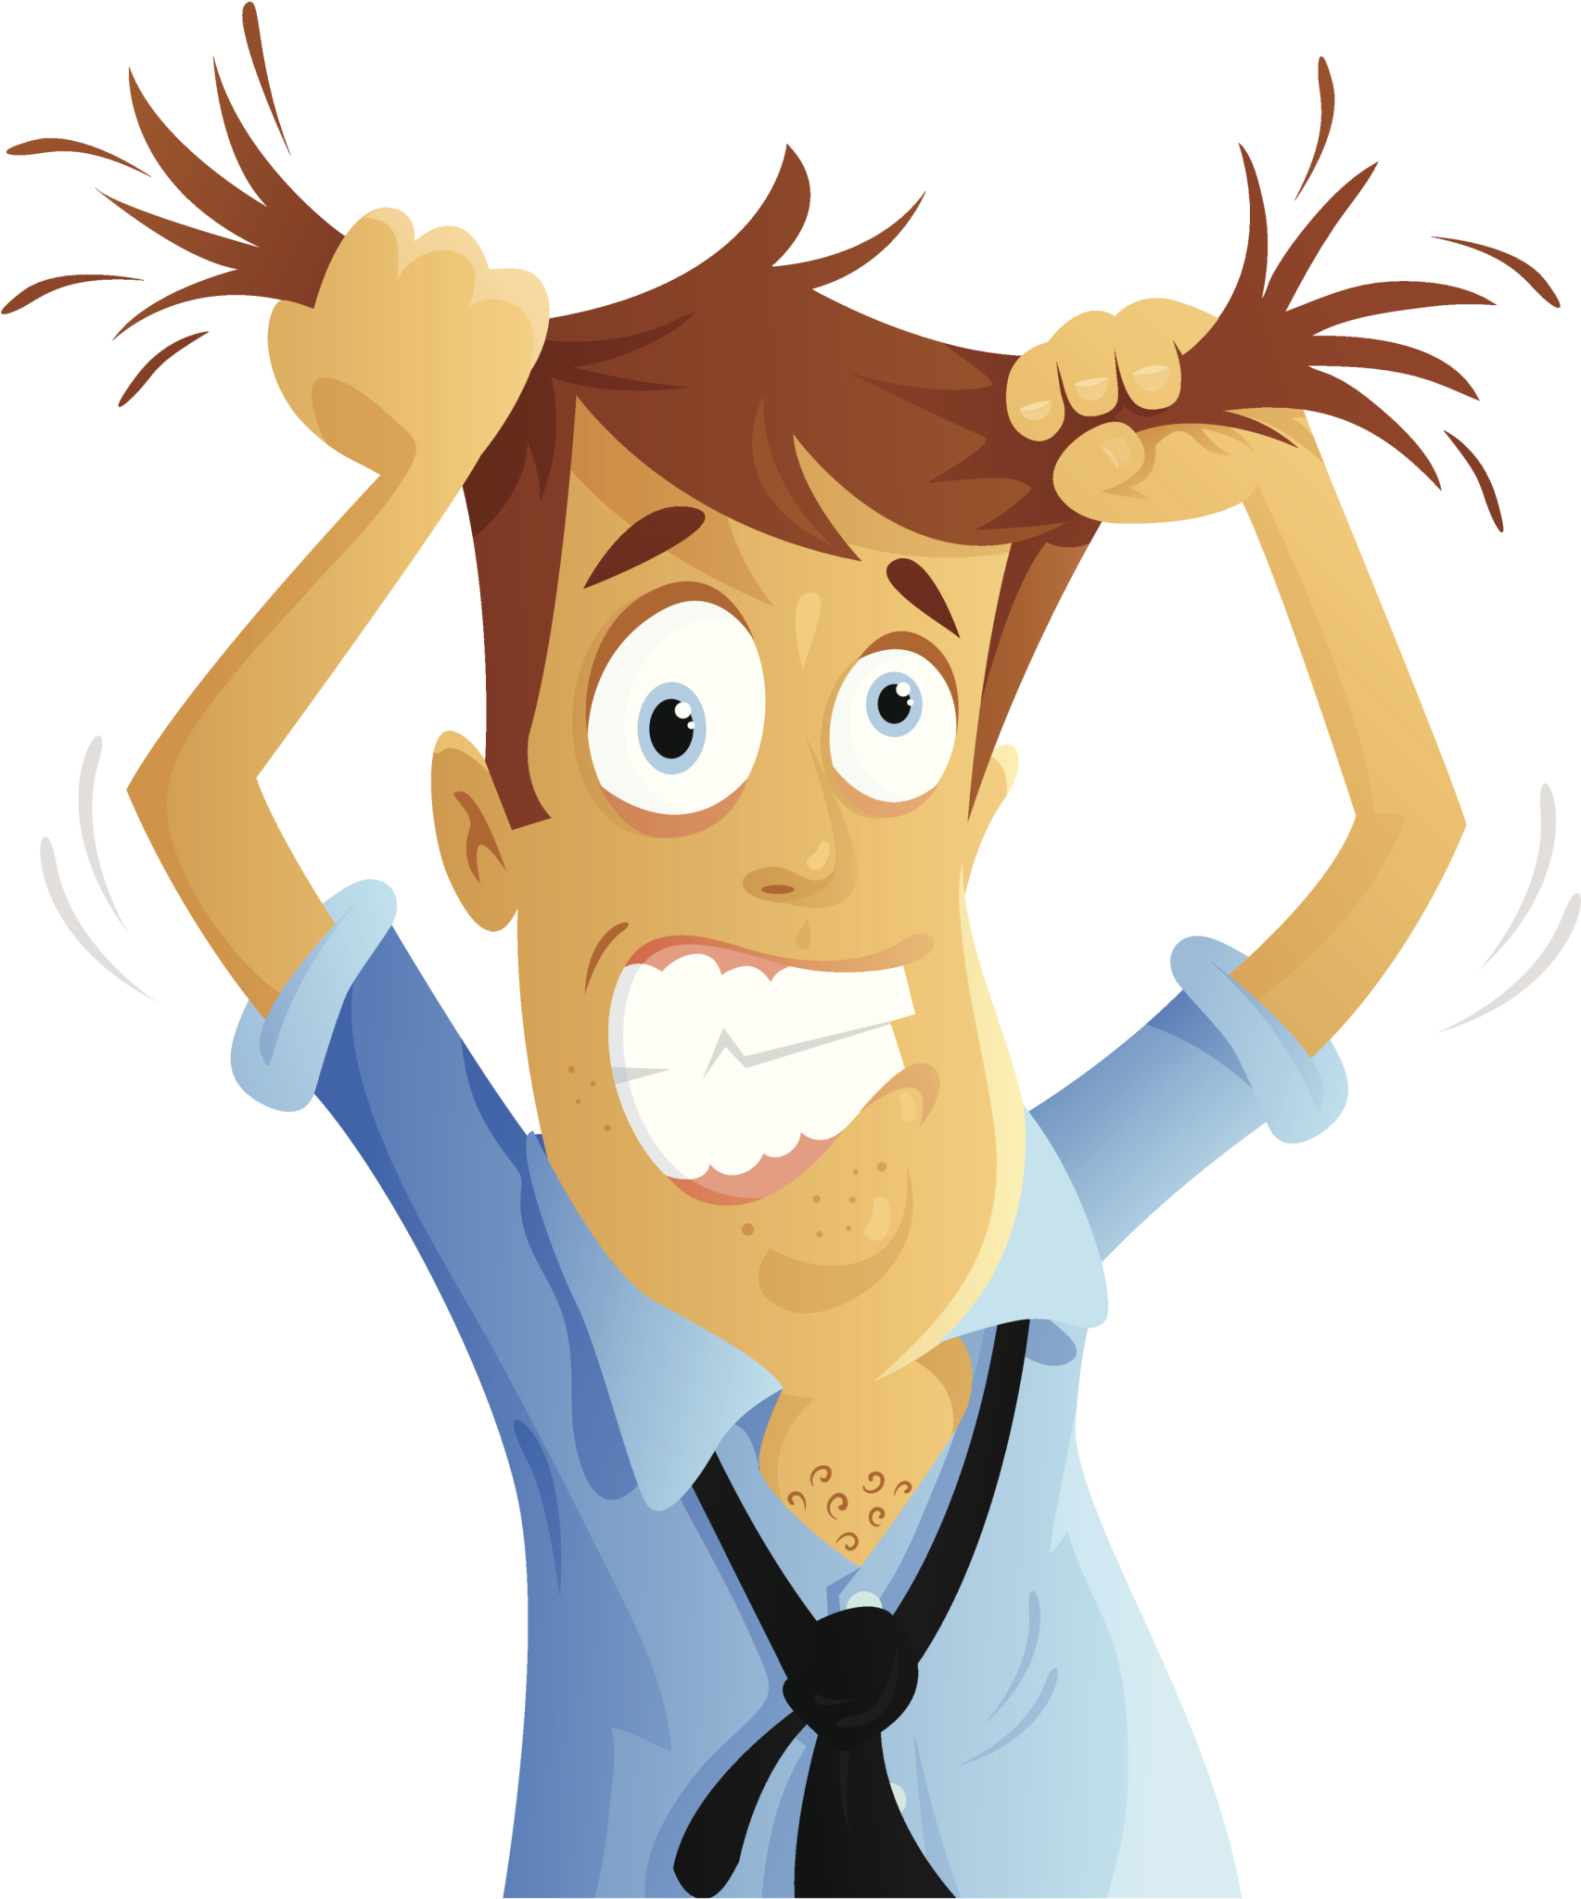 Tearing your hair out clipart png freeuse library Cartoon Pulling Hair Out Clipart | Free download best Cartoon ... png freeuse library